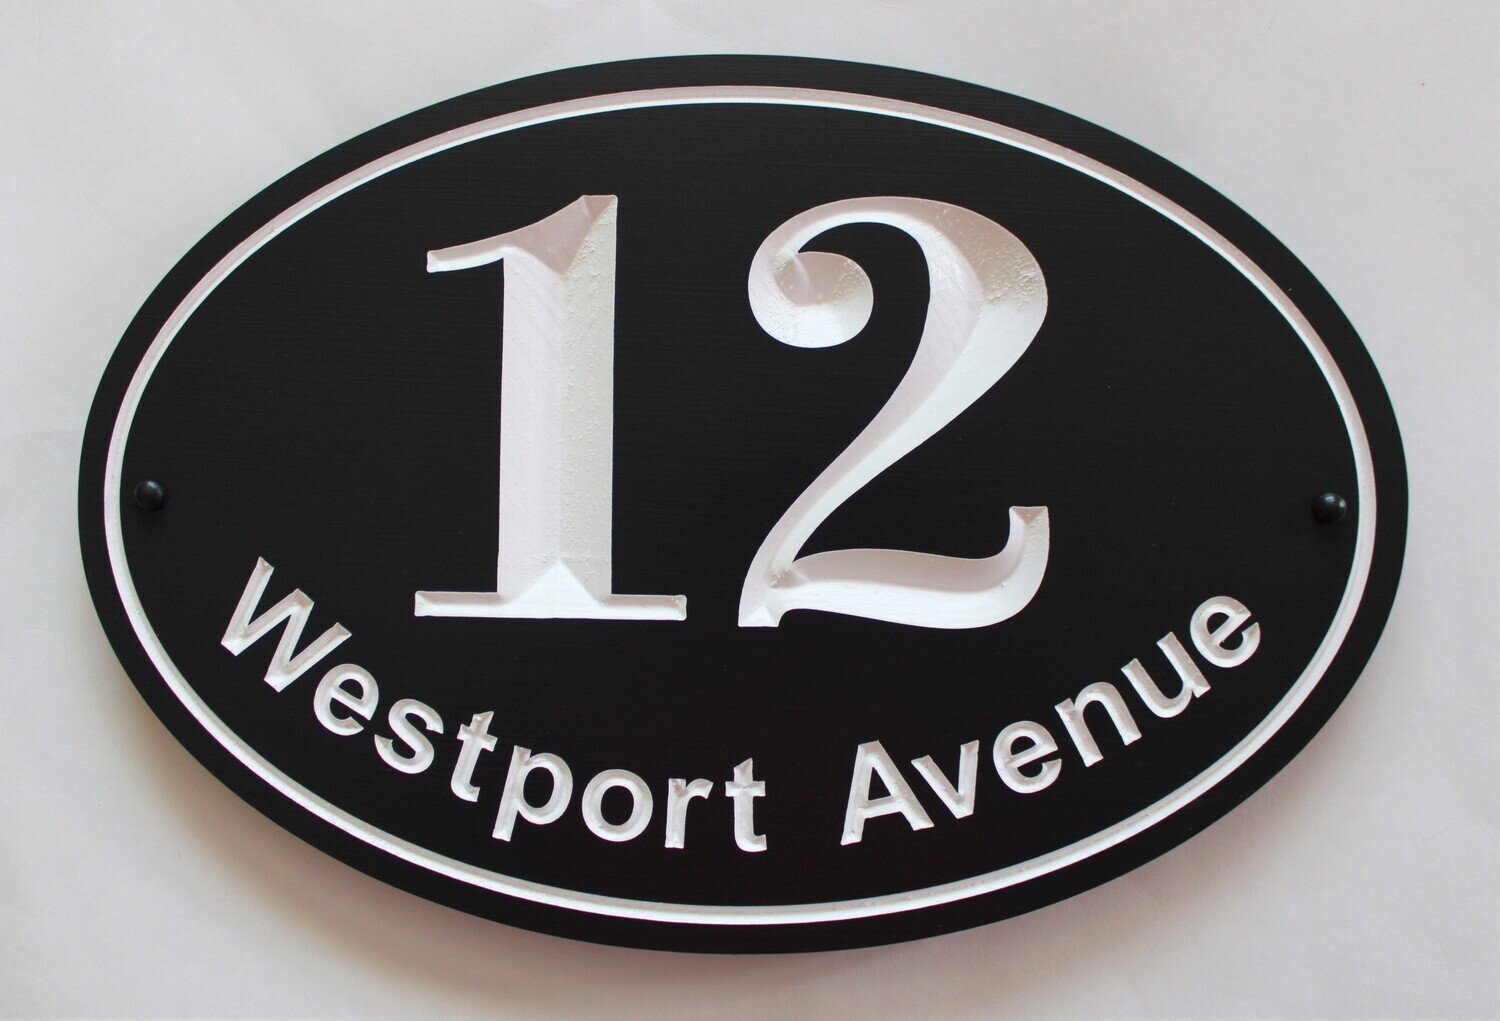 Custom Oval Address Sign - Painted Wood House Number Address Sign - House Number Address Plaque - Street Name Sign